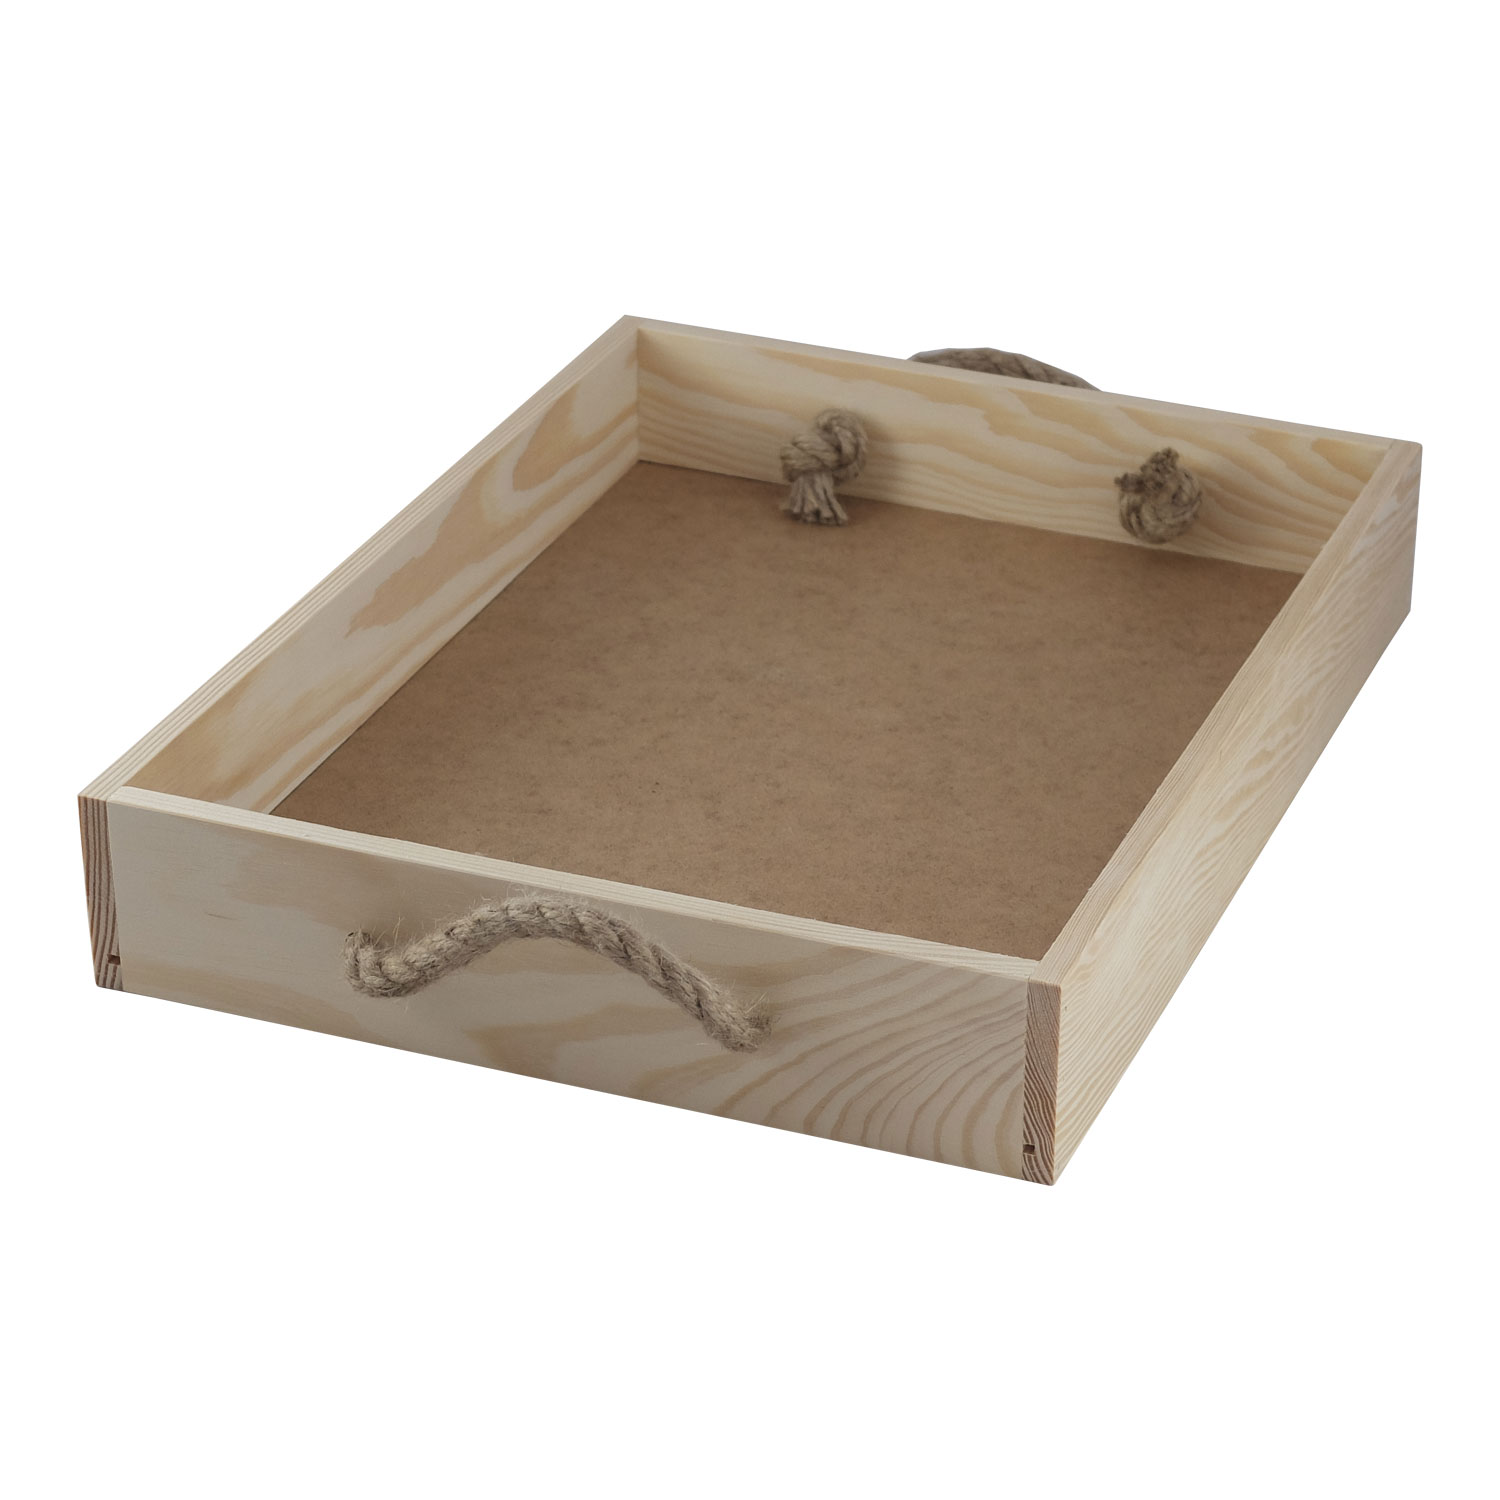 Wooden tray from the box  TA018